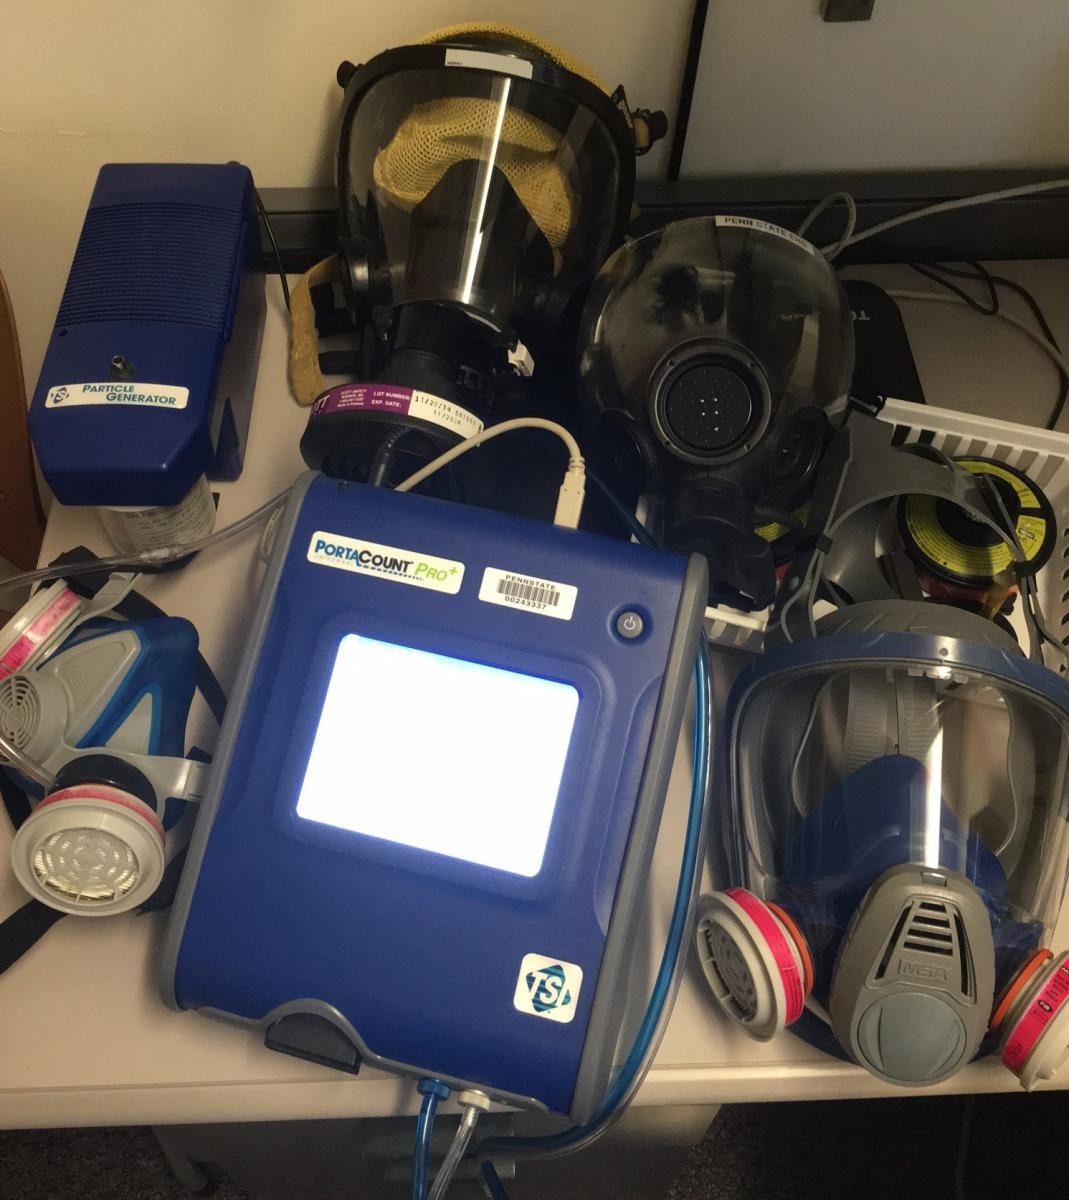 Respirators and testing equipment